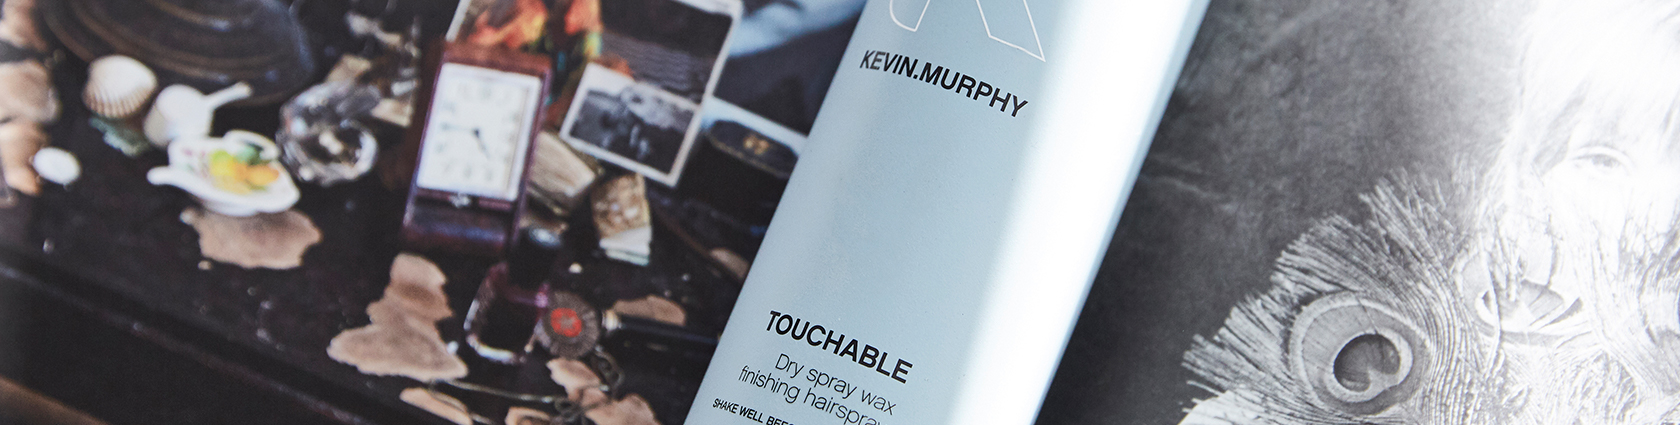 Nieuw: KEVIN.MURPHY TOUCHABLE